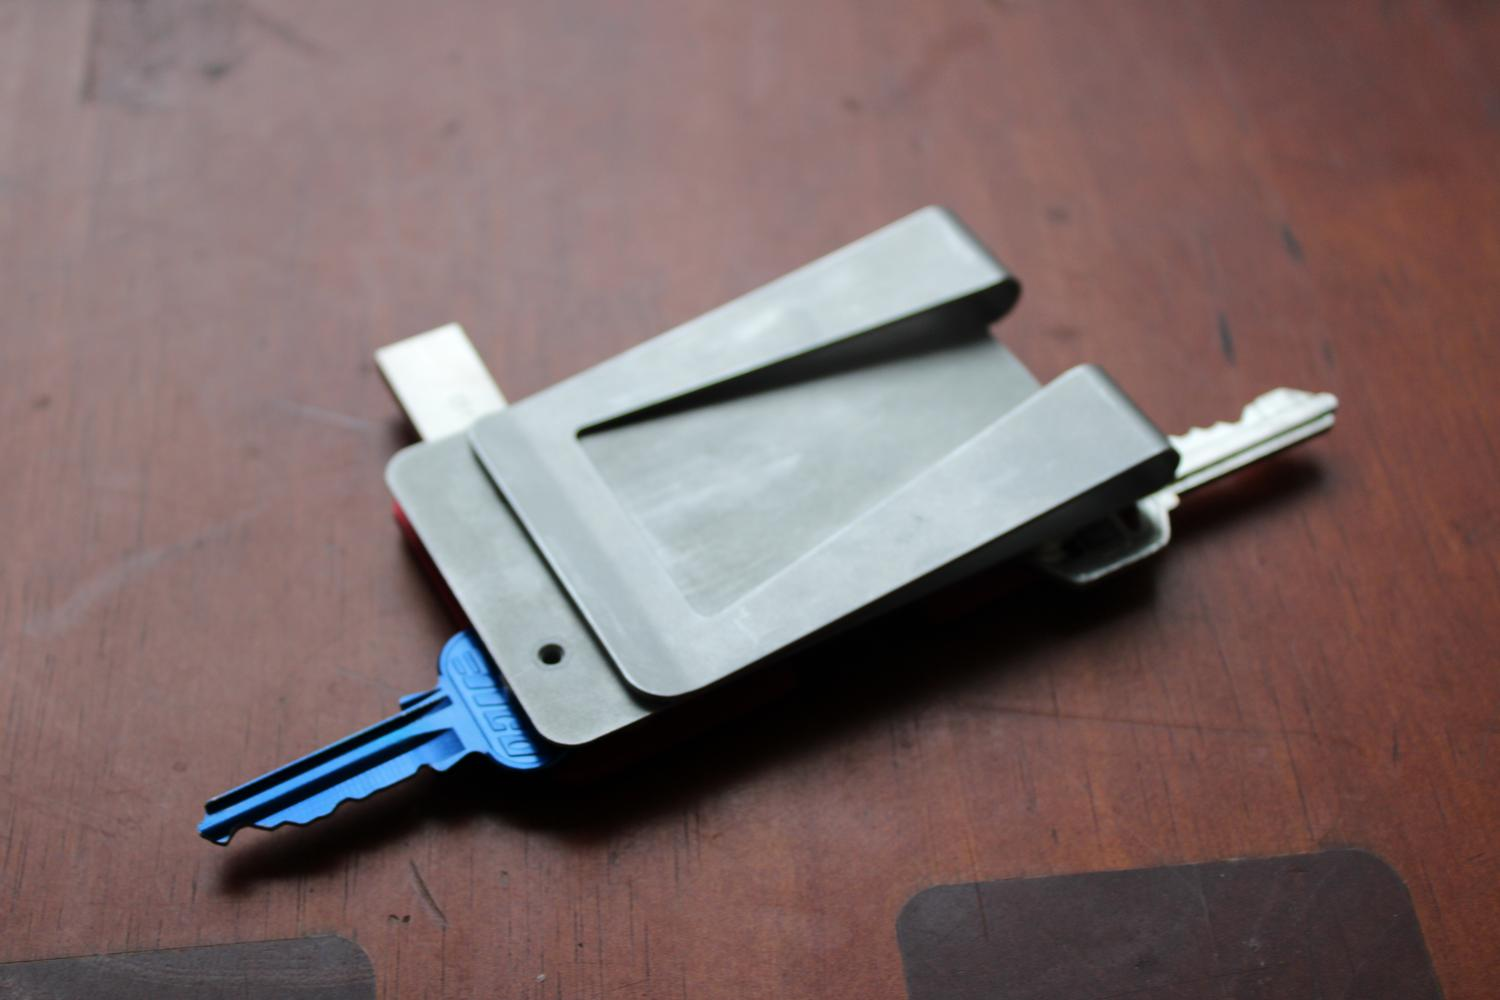 A close up photo of a table surface with the assembled metal wallet sitting on it. The wallet is upside down, with the keys and USB drive extended beyond the base plate. The bottom of the base plate is visible, as the wallet is upside down, and has a large clip at the bottom for slotting cards into.